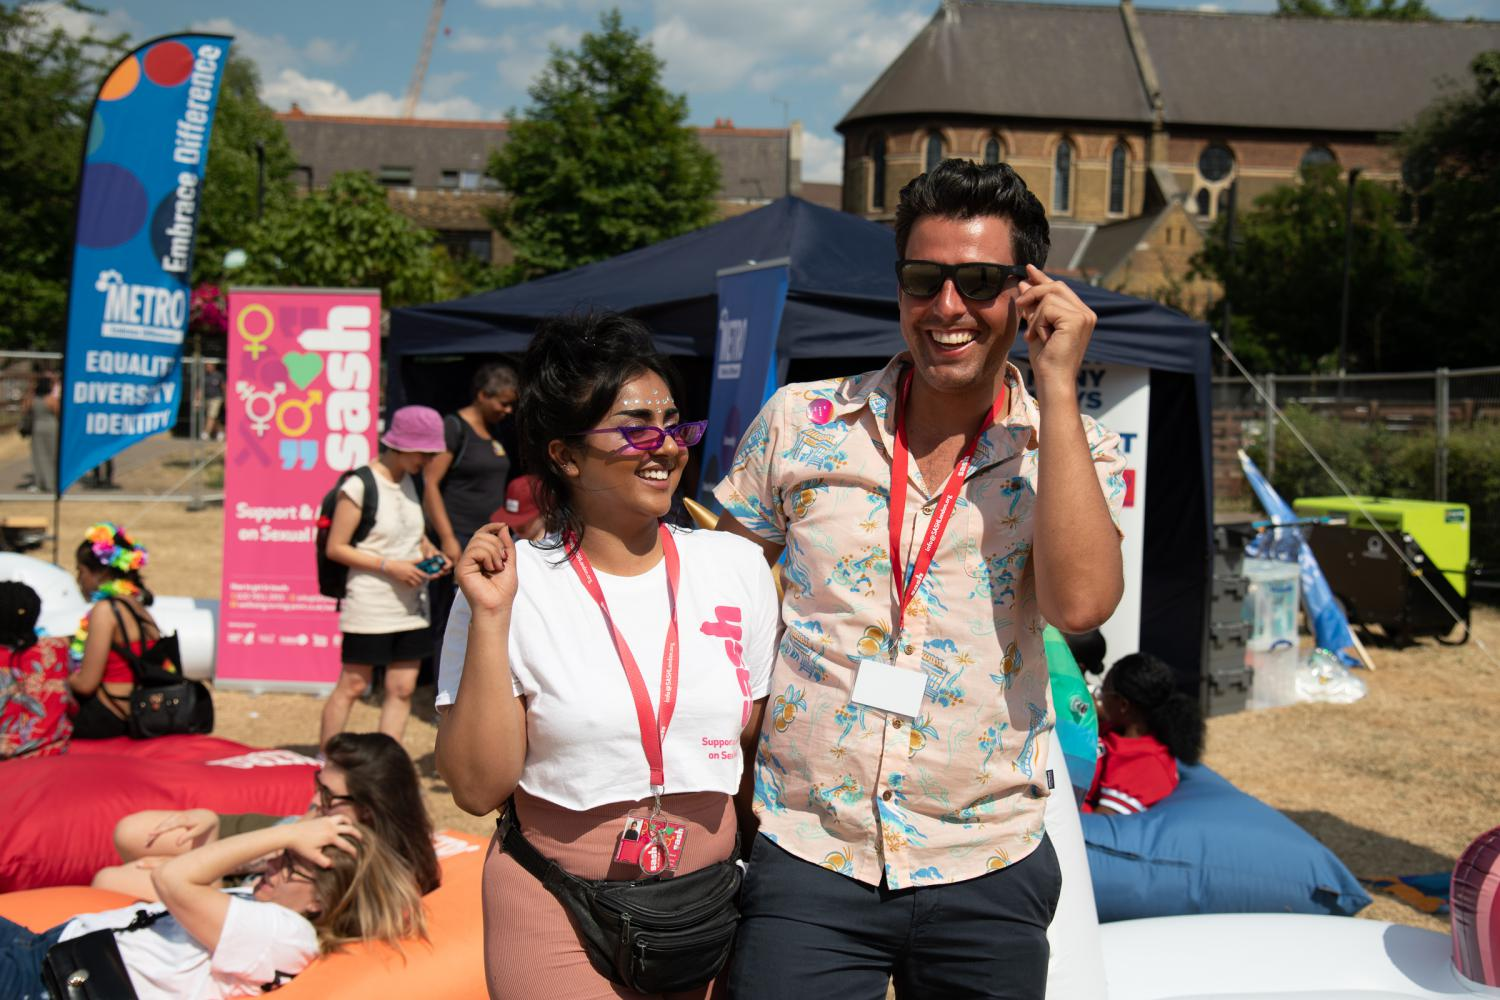 Staff from SASH in front of the METRO stall at Essex Pride